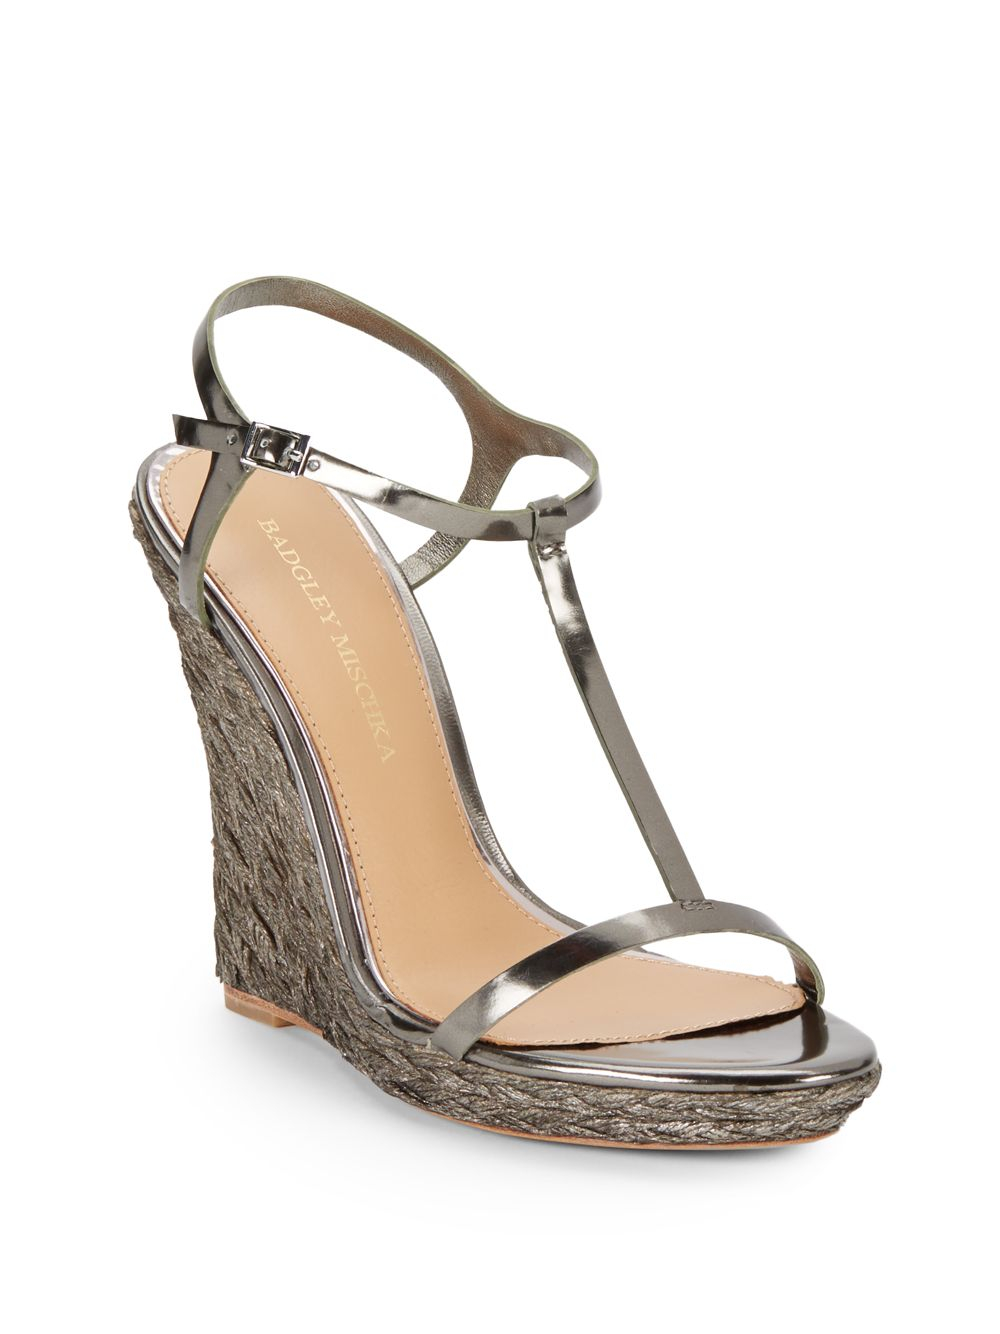 Badgley Mischka Afton Iii T Strap Wedge Dress Sandals In